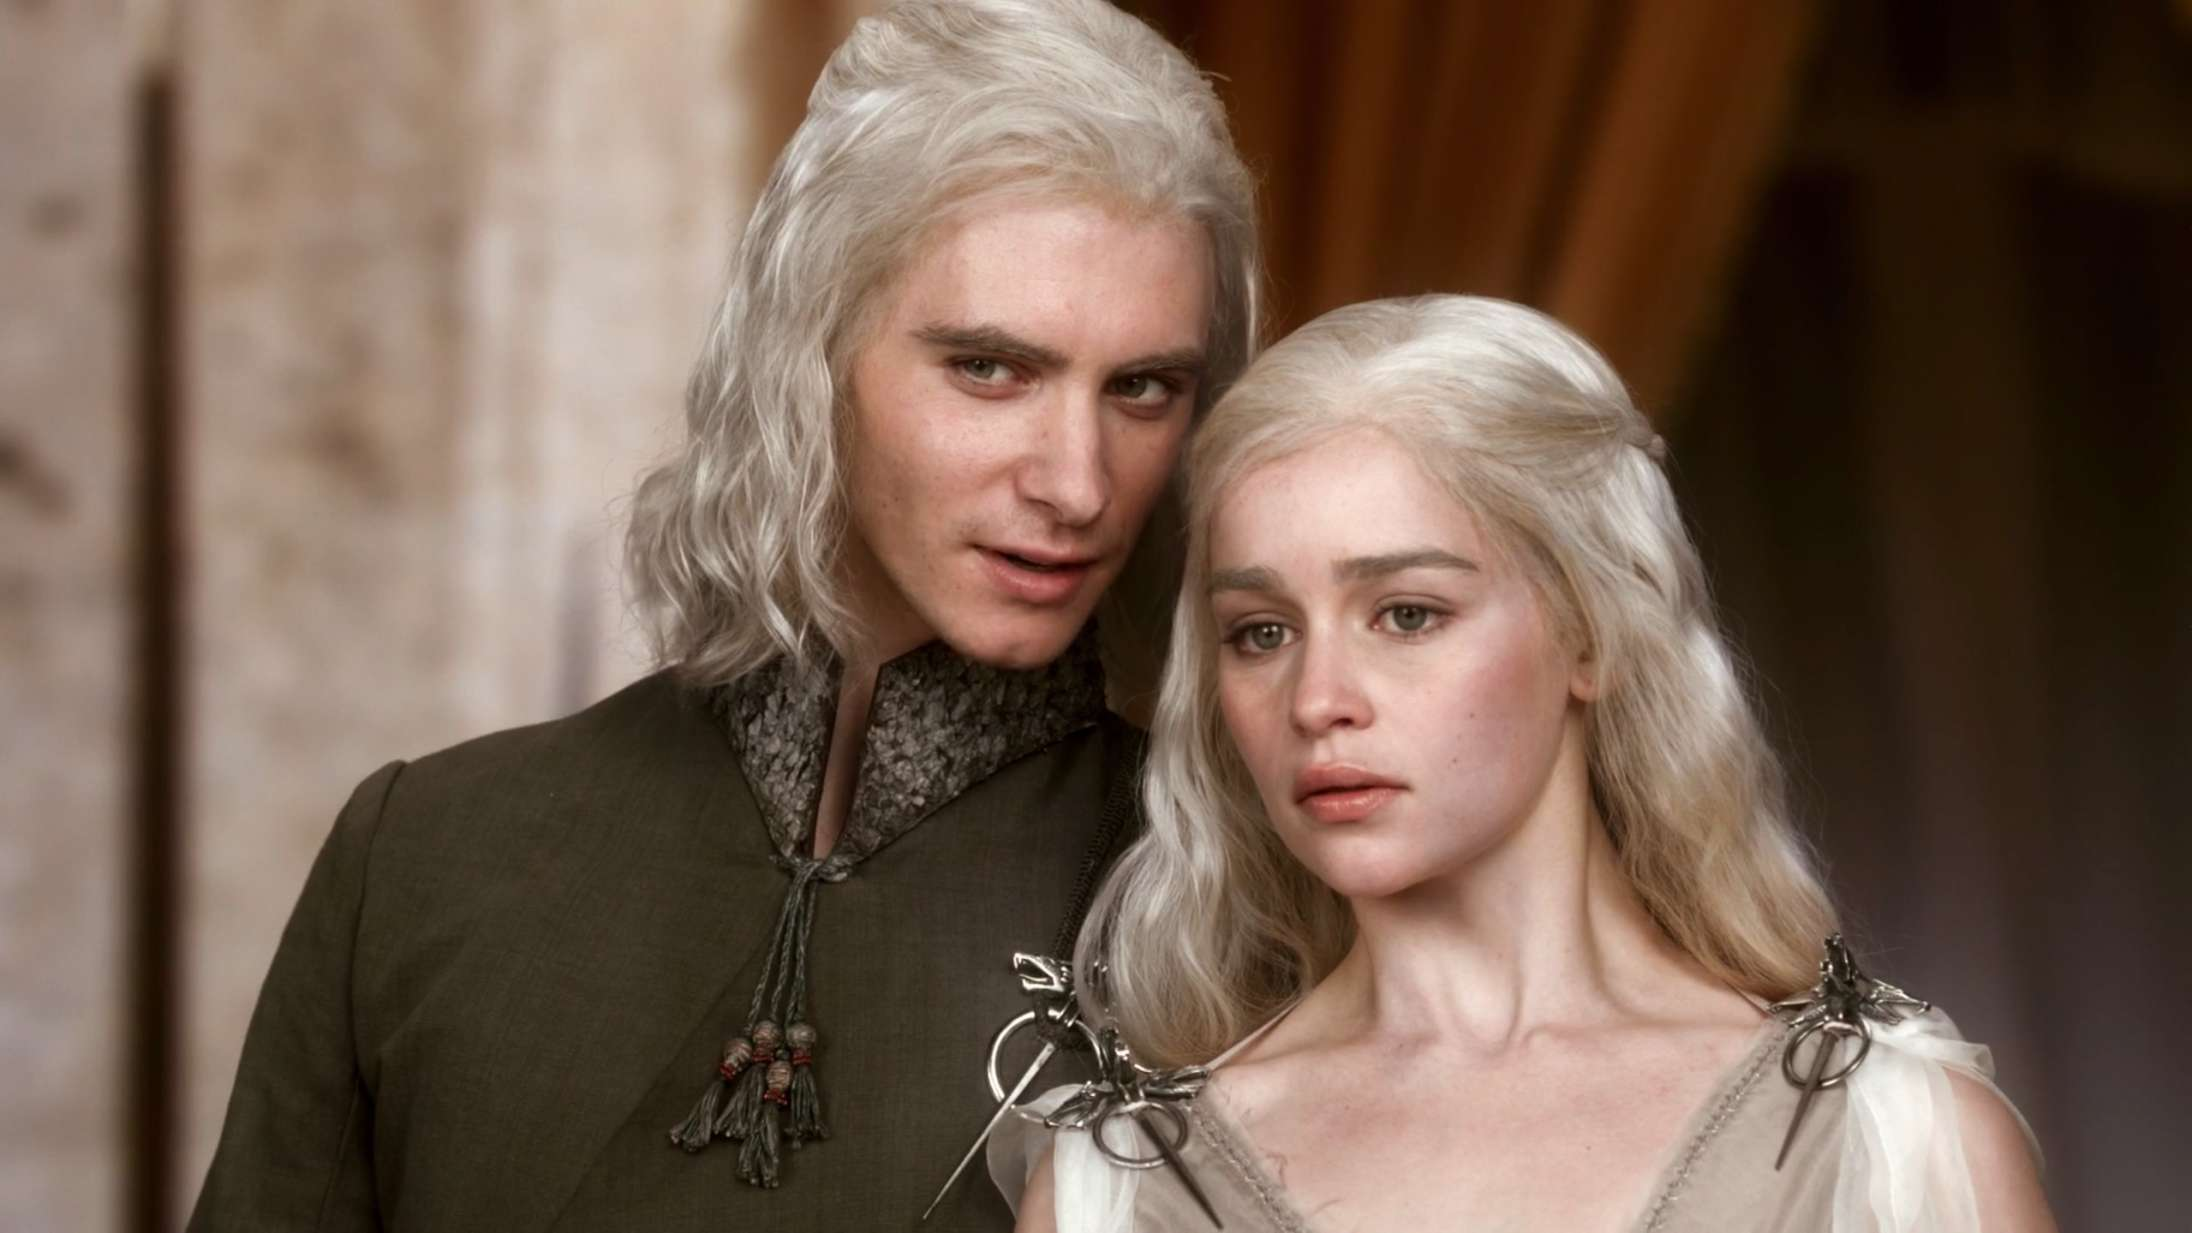 Ny 'Game of Thrones'-spinoff i støbeskeen: 'Tales of Dunk and Egg'